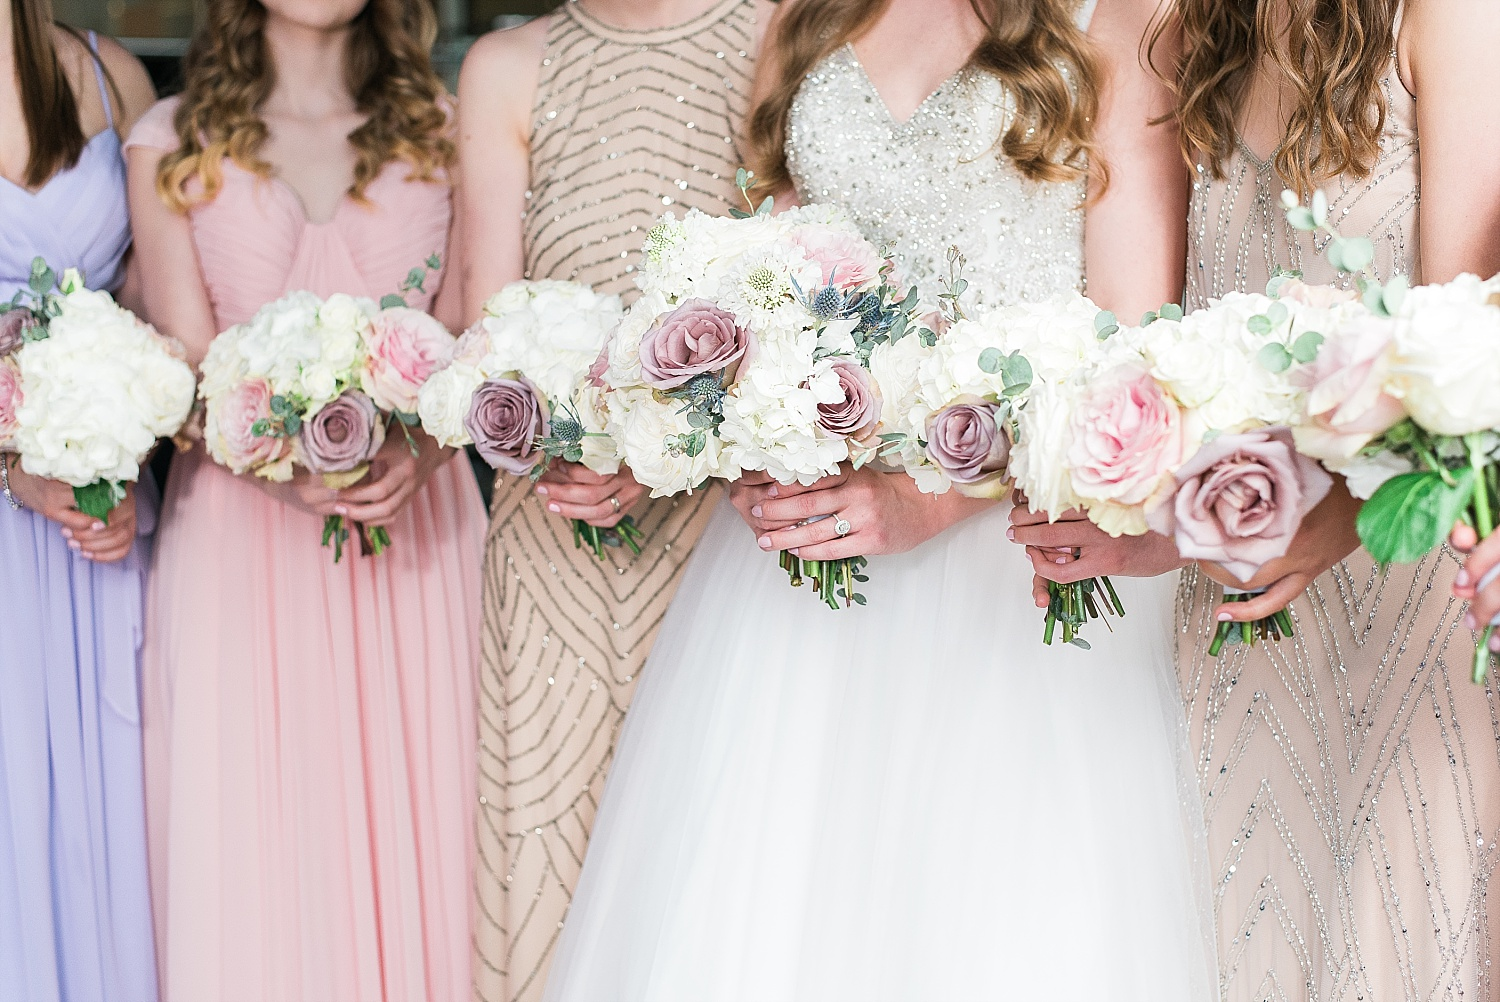 Love the colors in the bouquets!